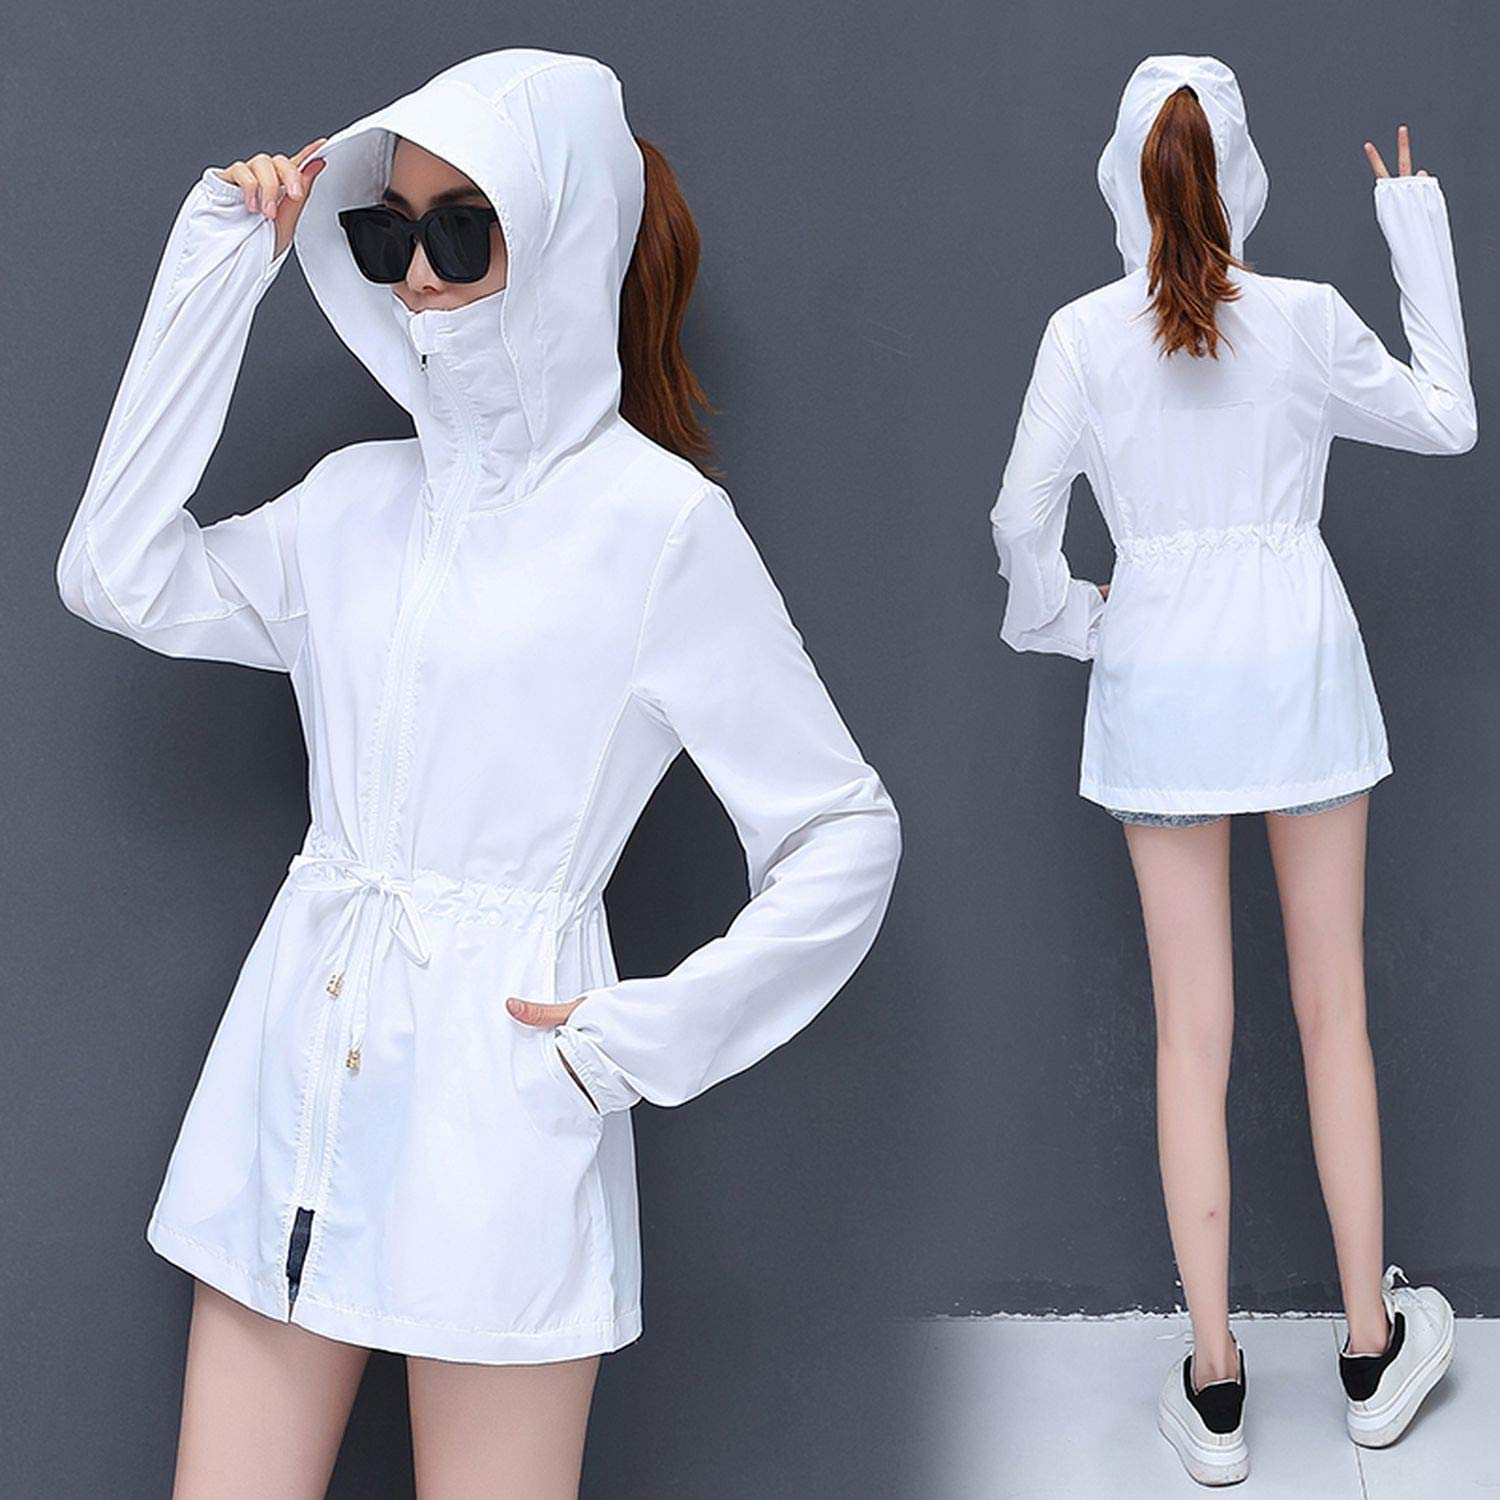 Summer Beach Thin Plus Size Outwear Women Sunscreen Sun Protection Clothing Hooded Cardigan